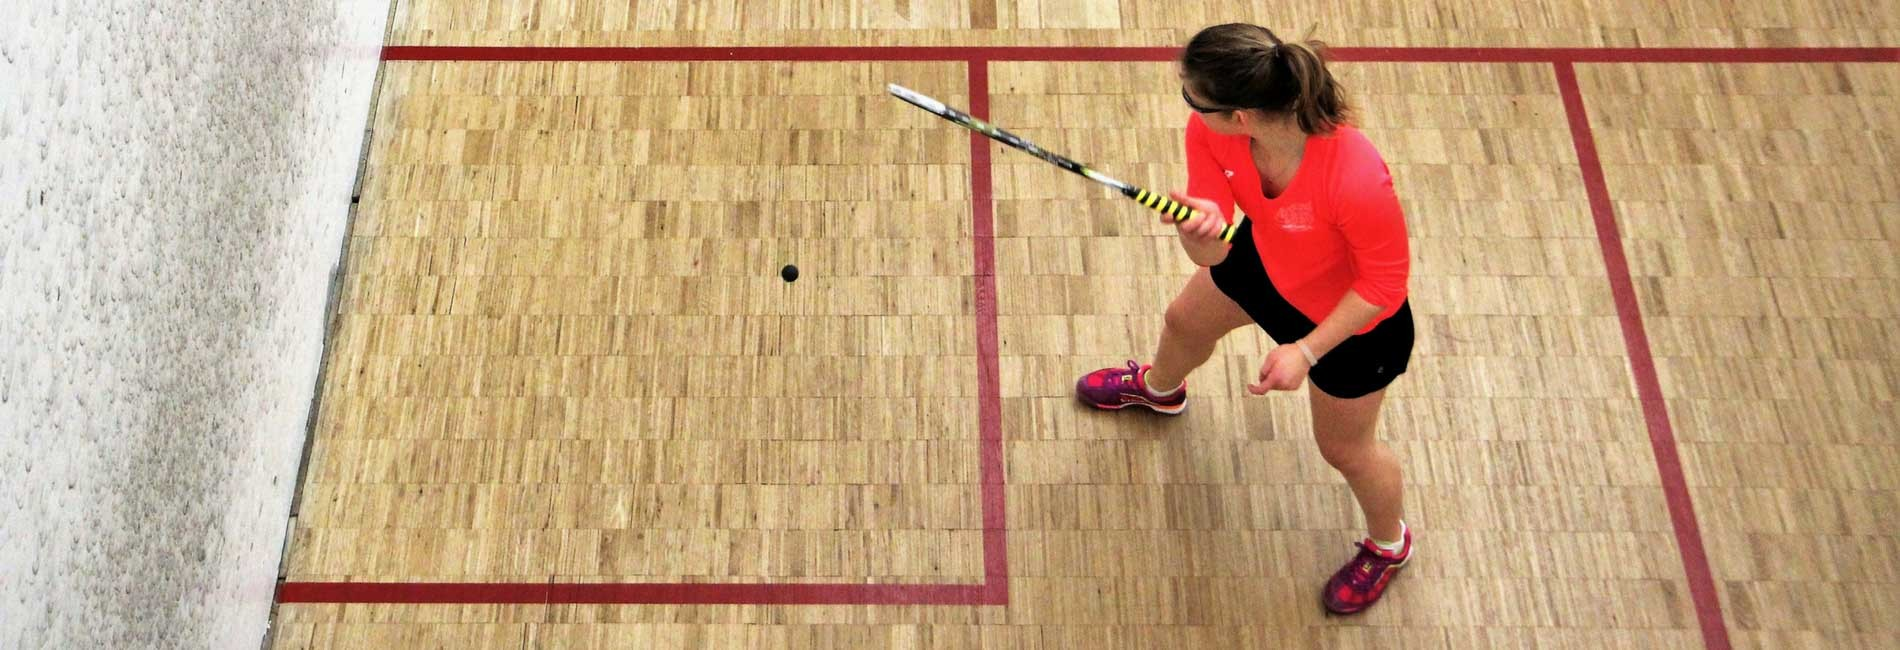 Standard swscd   squash  1   activity page banner  1900x650